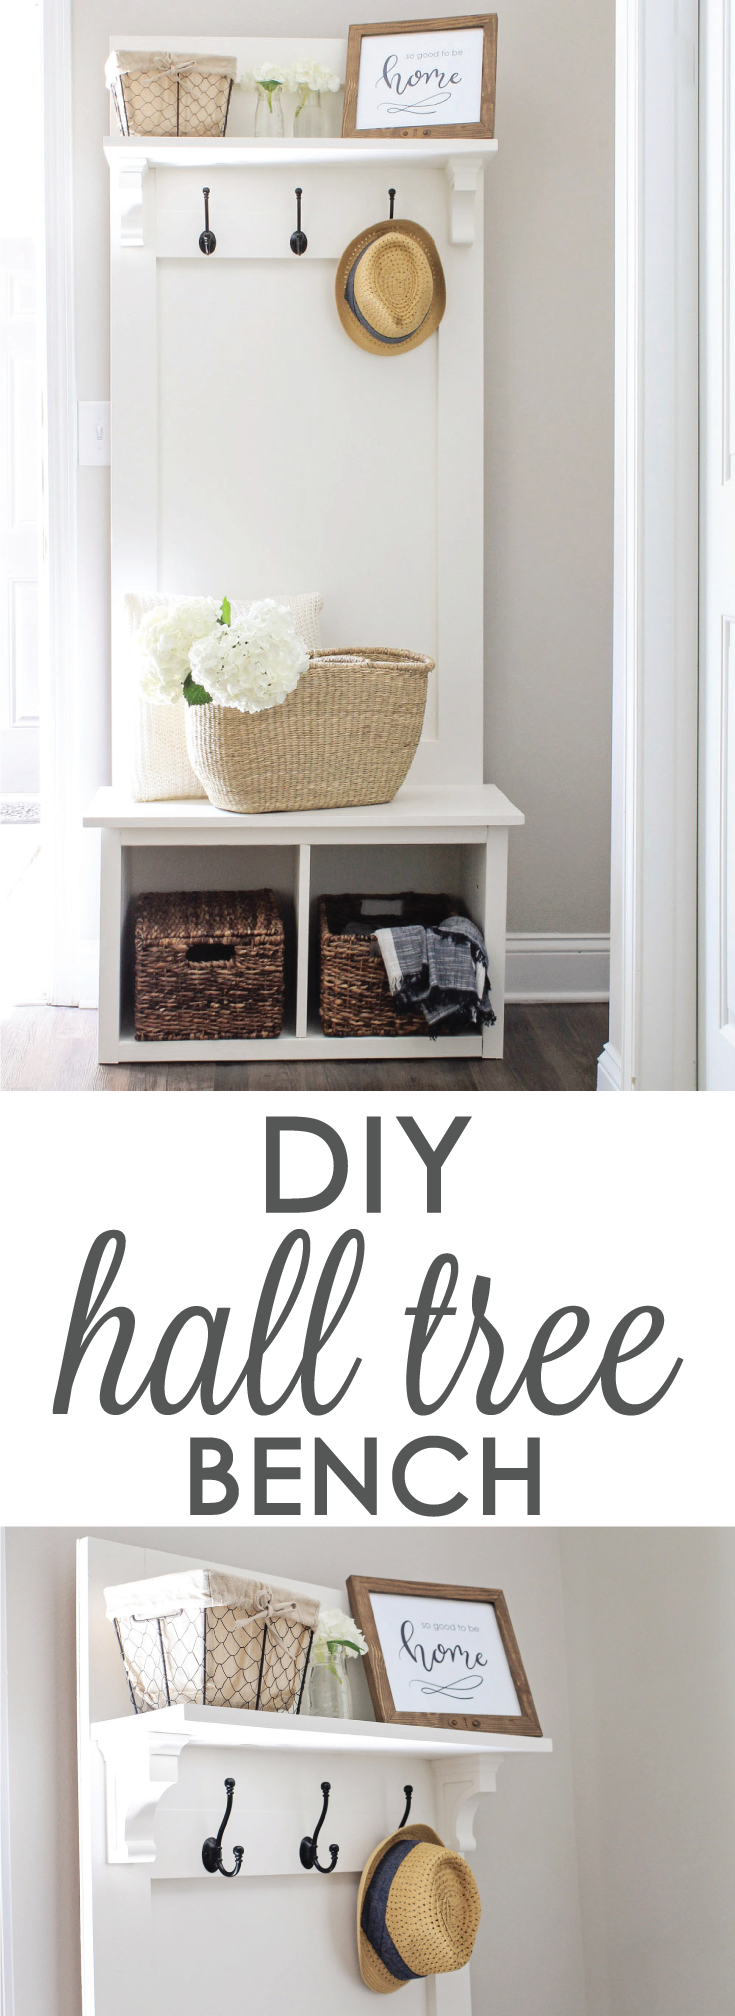 DIY Entryway hall tree bench perfect for